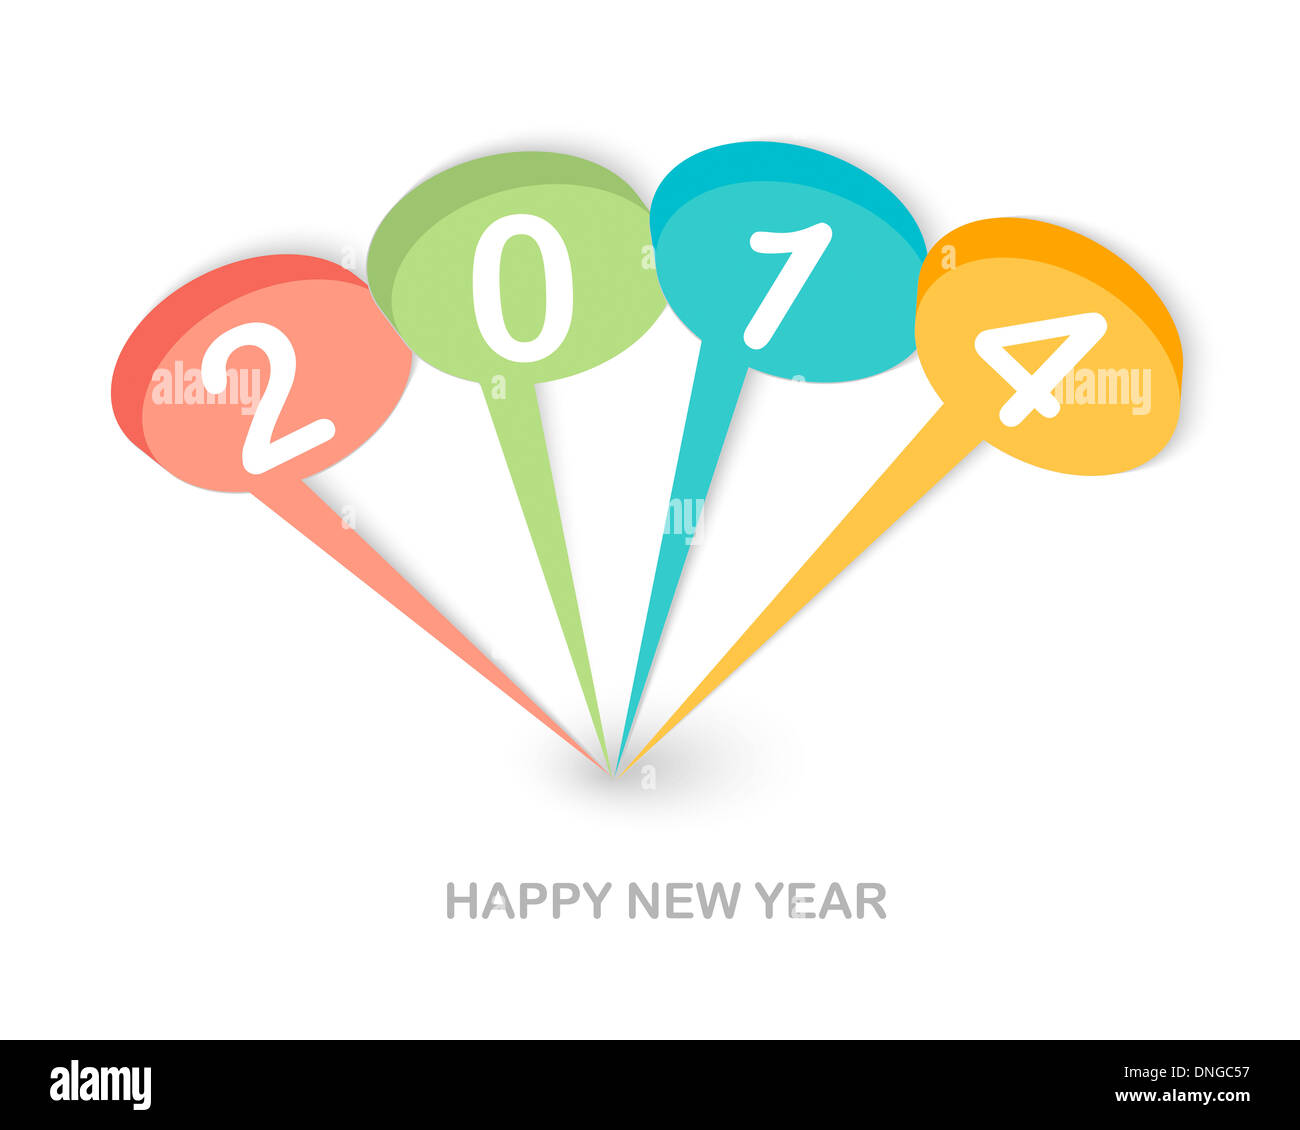 Happy new year 2014 social media talk bubbles greeting card stock happy new year 2014 social media talk bubbles greeting card background eps10 vector file with transparency layers m4hsunfo